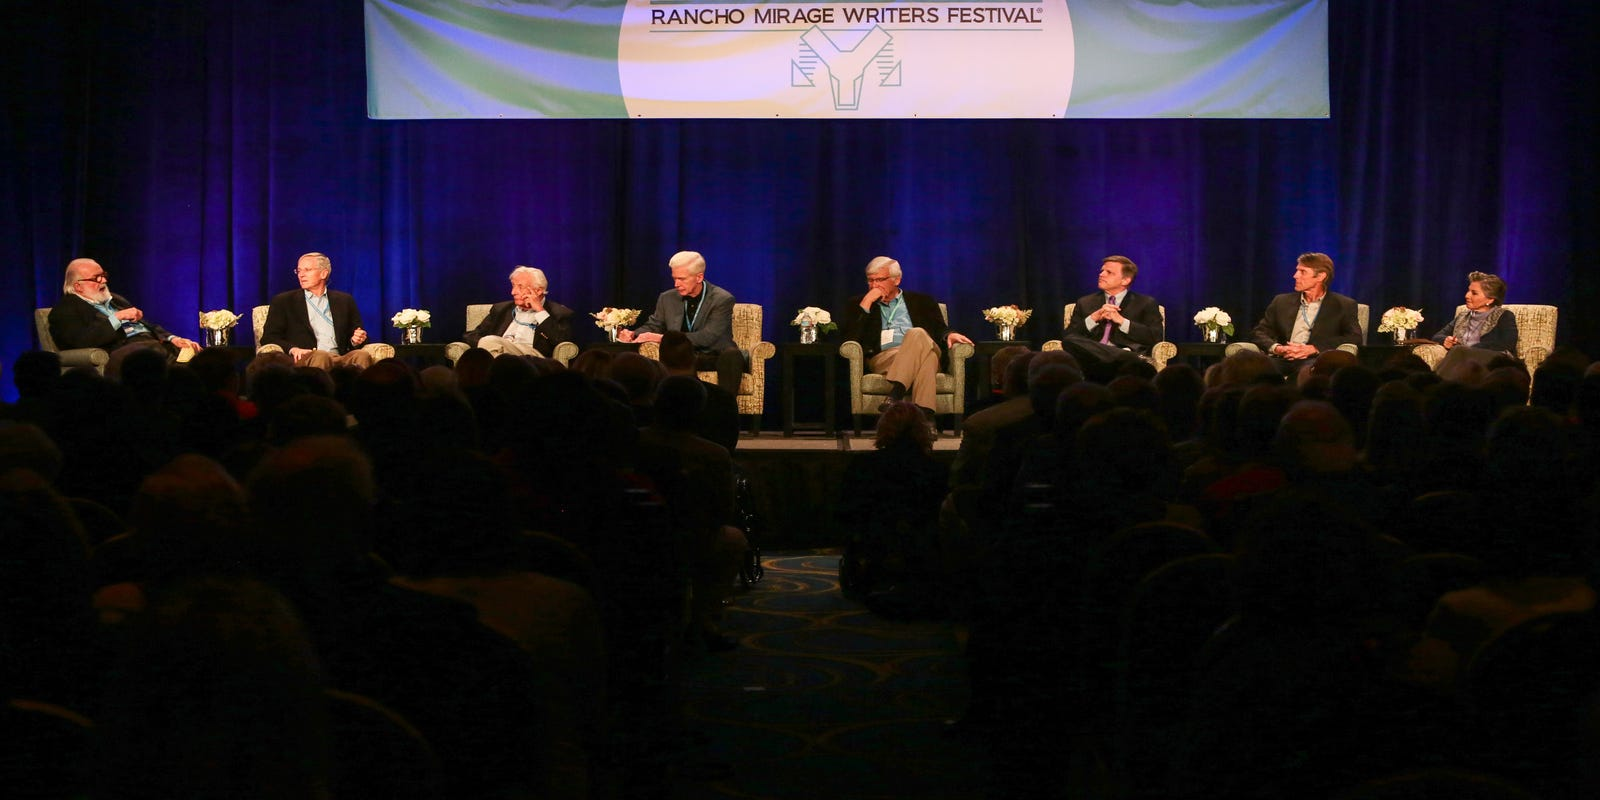 Valley Voice: Rancho Mirage Writers Festival, your lofty image demands greater diversity